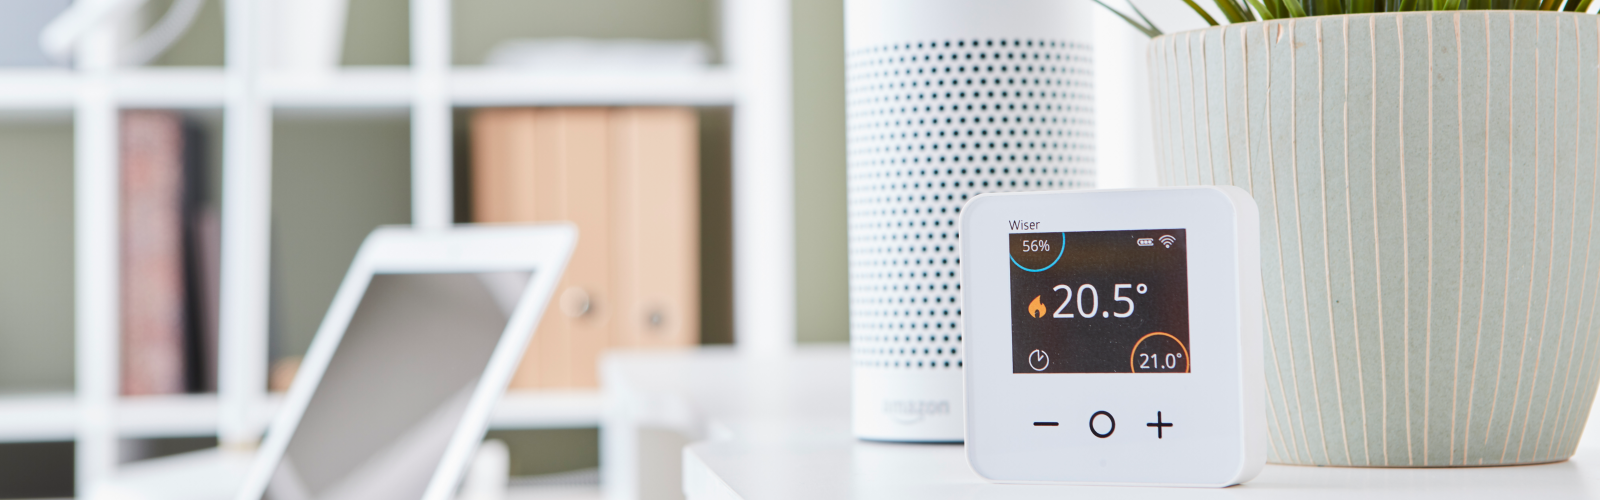 amazon alexa header banner with a wiser smart room thermostat